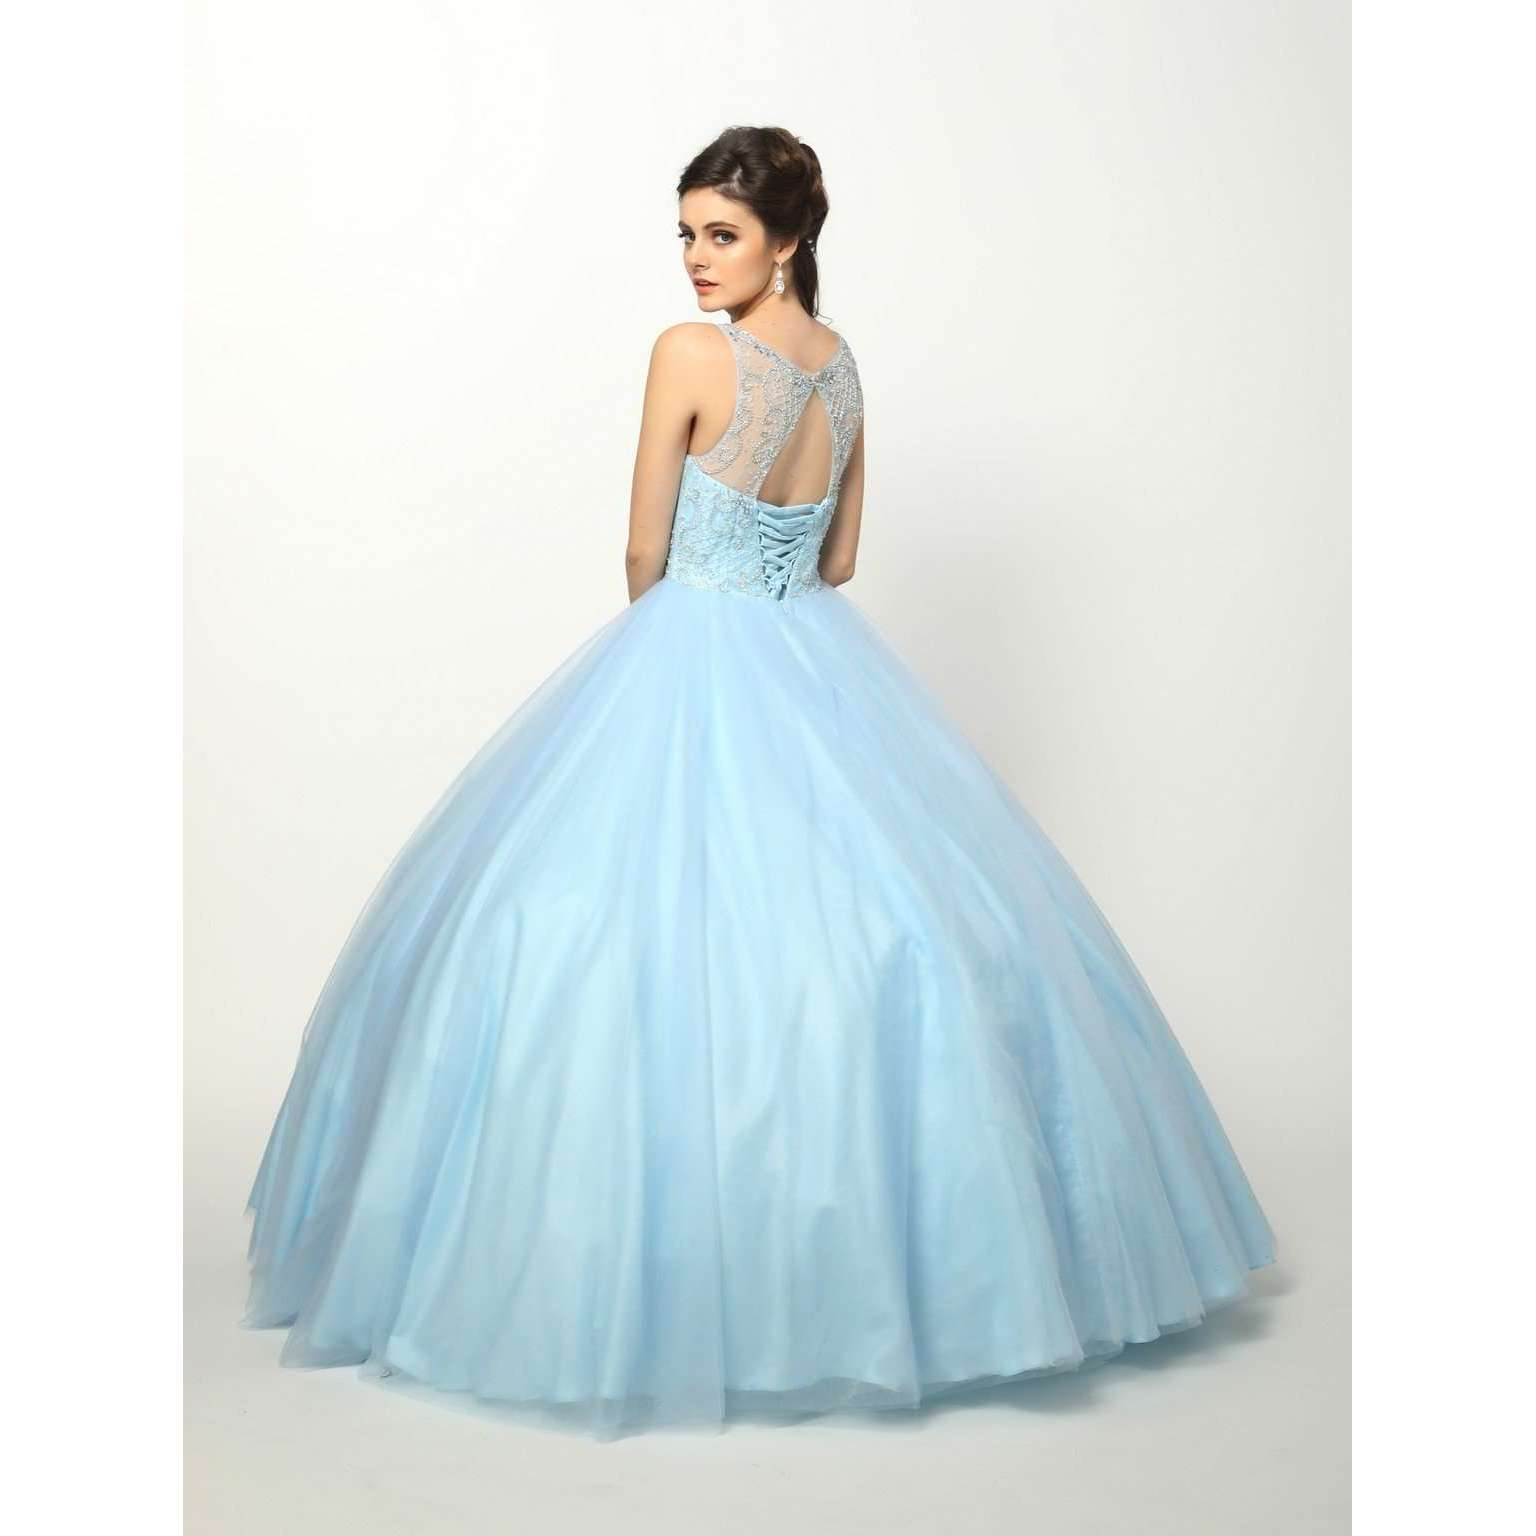 Beaded High Neck Bodice with keyhole back on Tulle Ballgown 1417 - Julietdresses